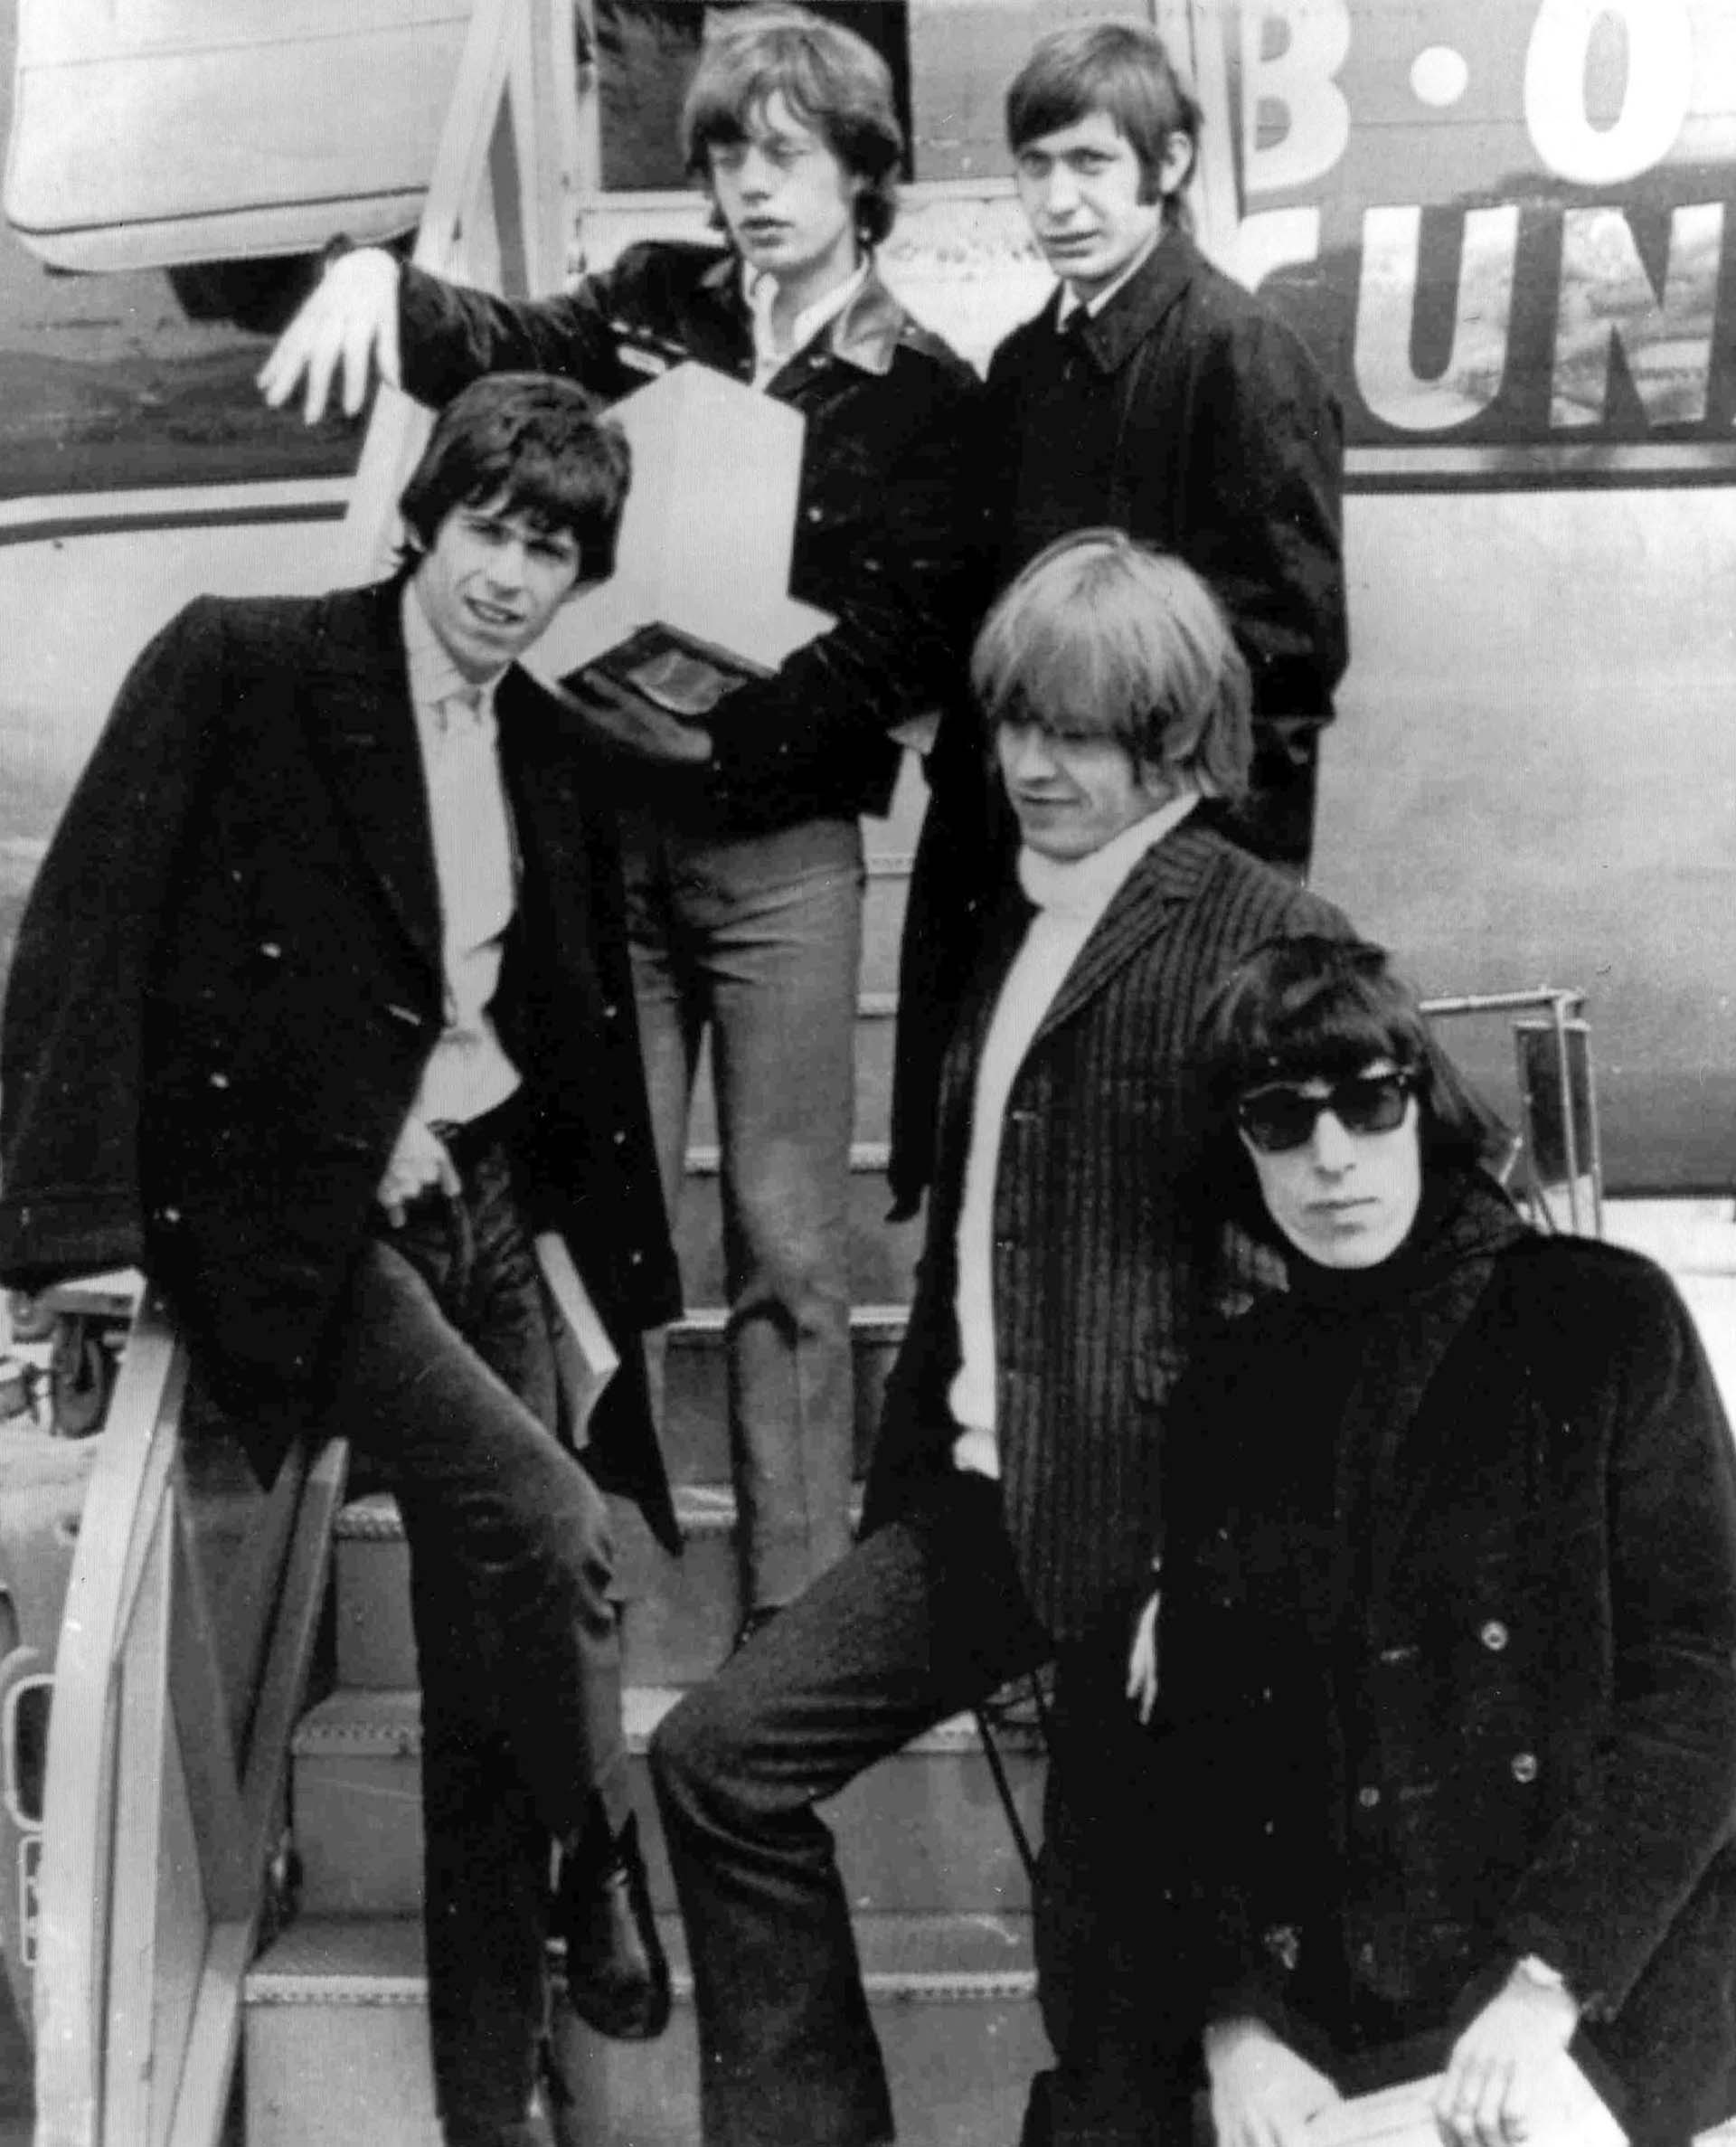 April 22, 1965 file photo, British rock and roll group, The Rolling Stones, arrive at Montreal Airport.El 22 de abril de 1965, The Rolling Stones llega al aeropuerto de Montreal.